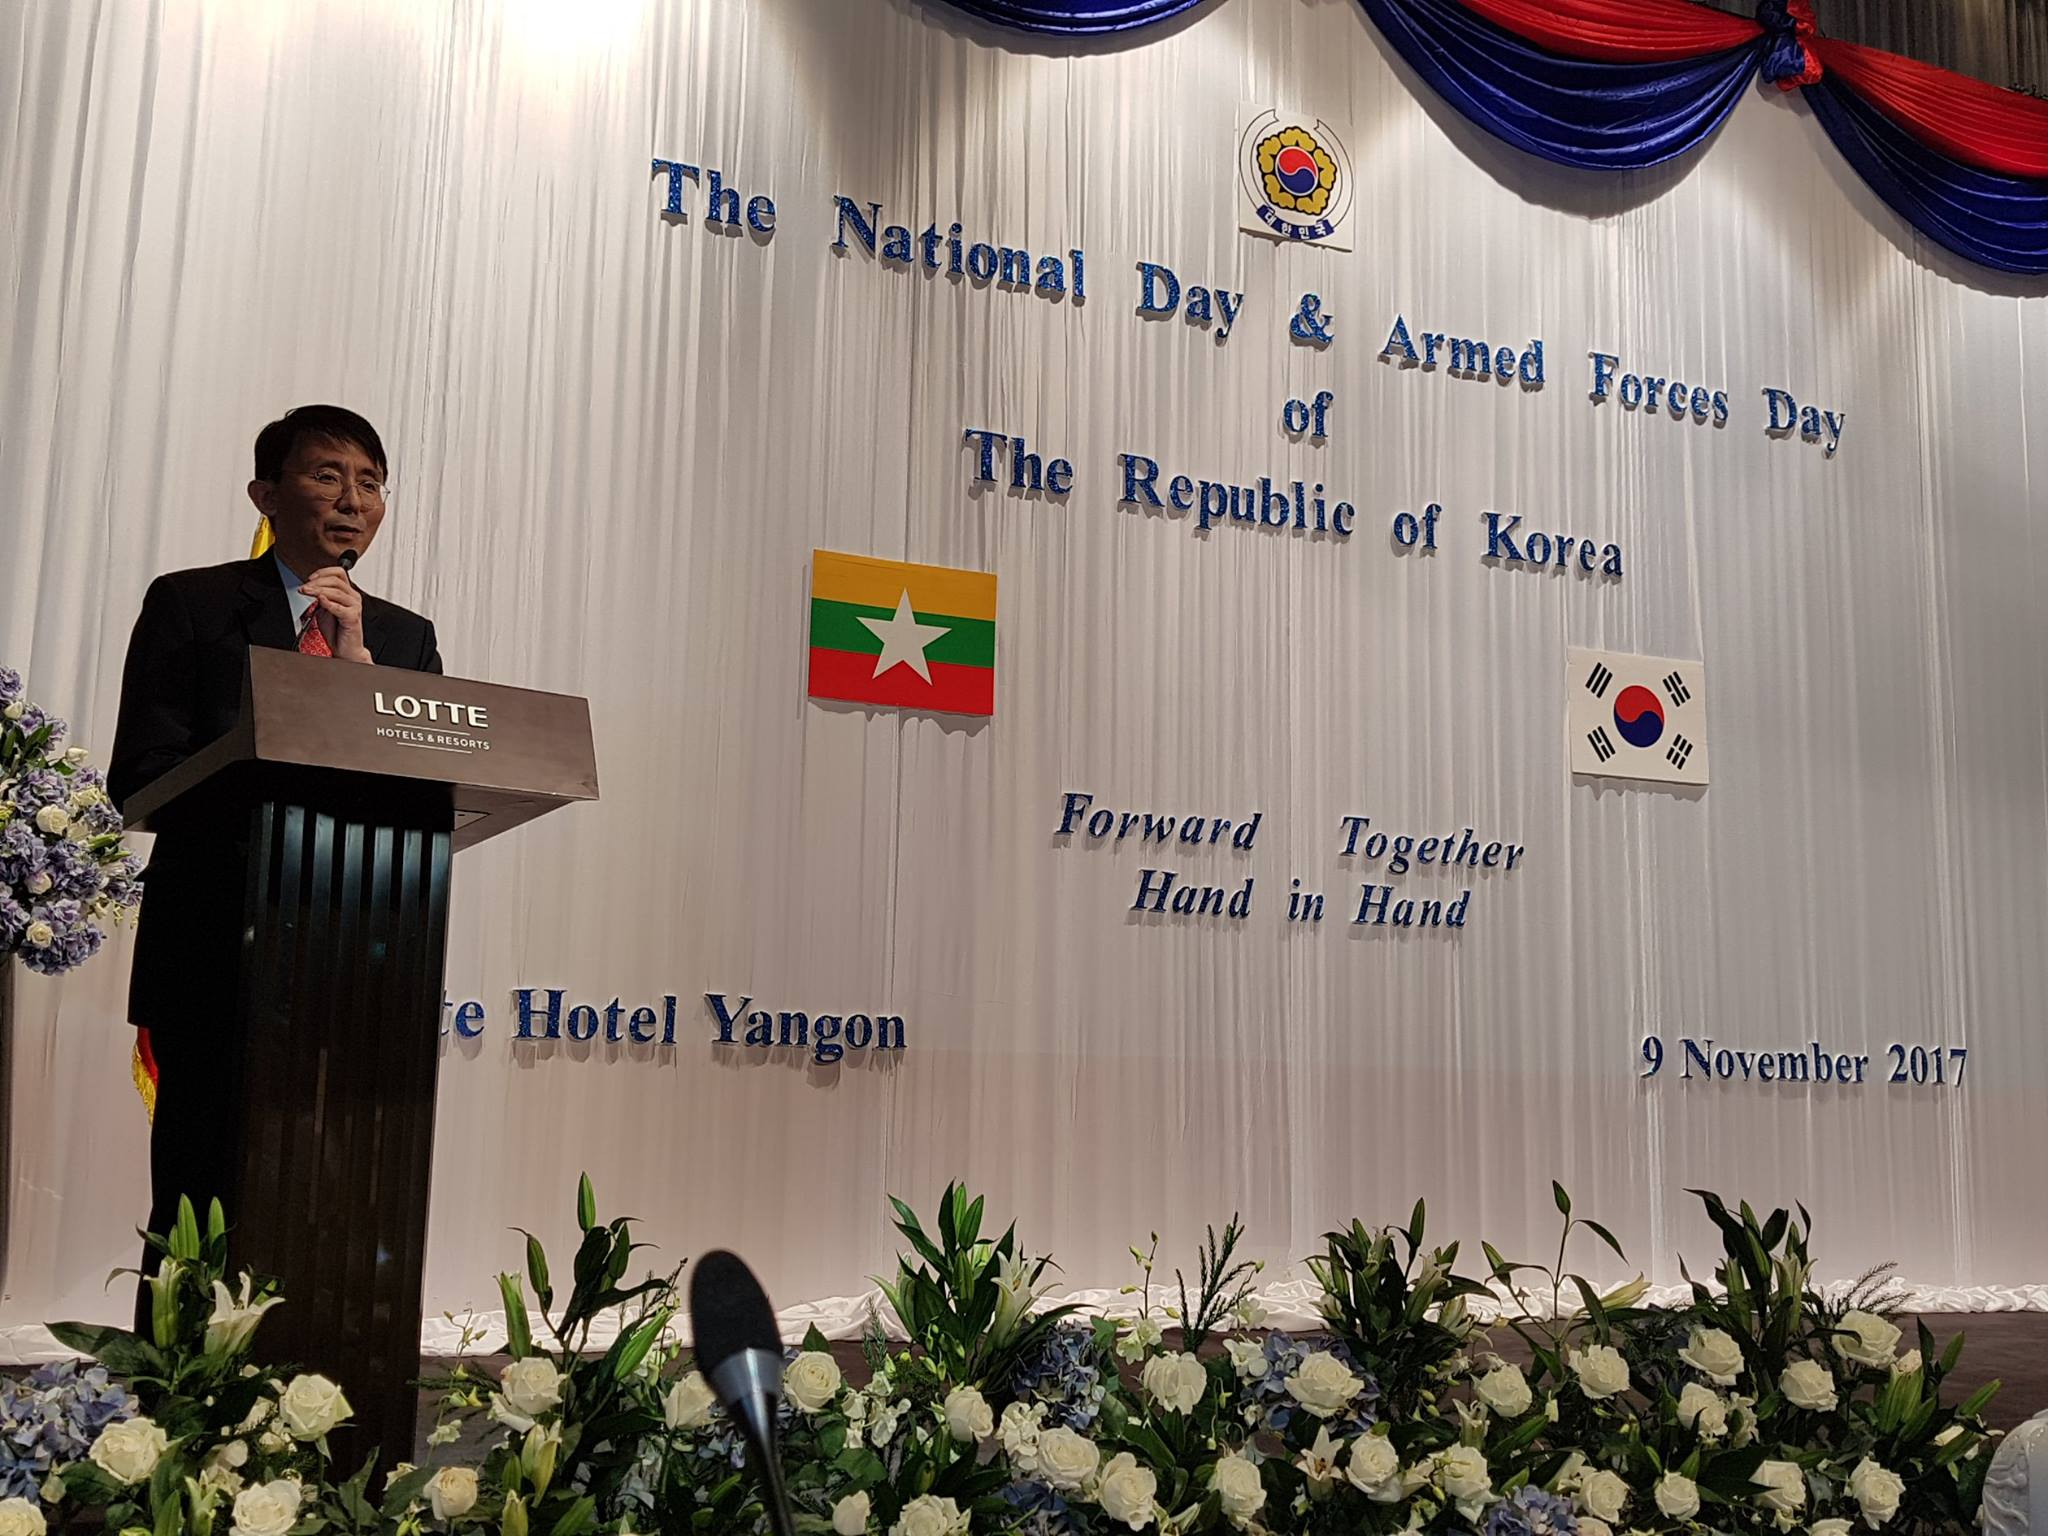 The reception for the 2017 National Day and Armed Forces Day(11.9)